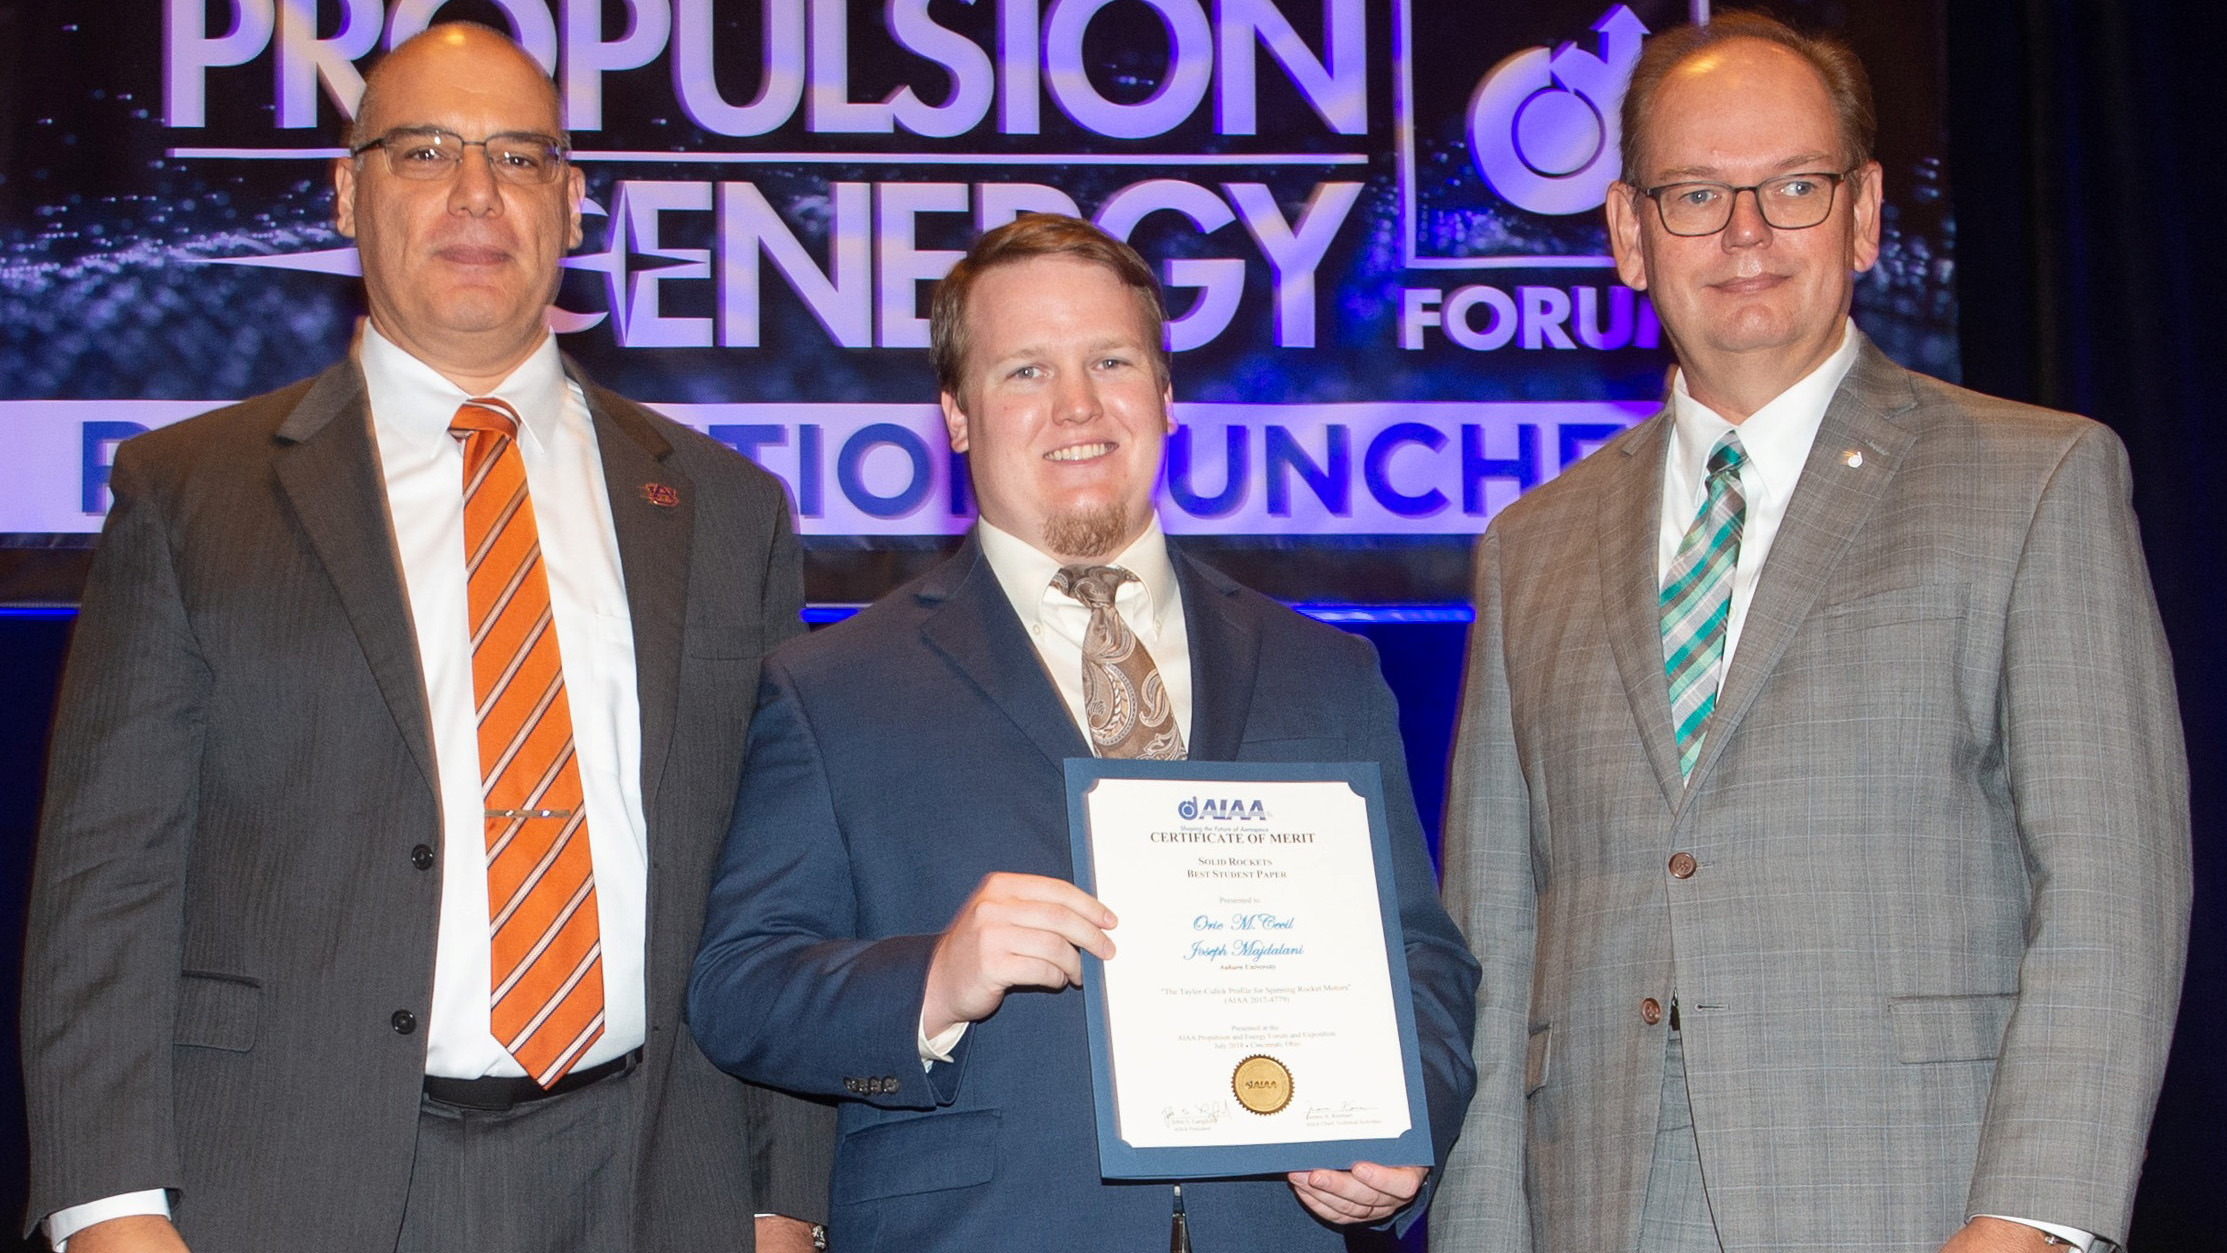 Professor Joe Majdalani and AE graduate student Orie Cecil receive the Solid Rockets Best Student Paper award from Propulsion Director Jeff Hamstra at the Propulsion and Energy Forum in Cincinnati.